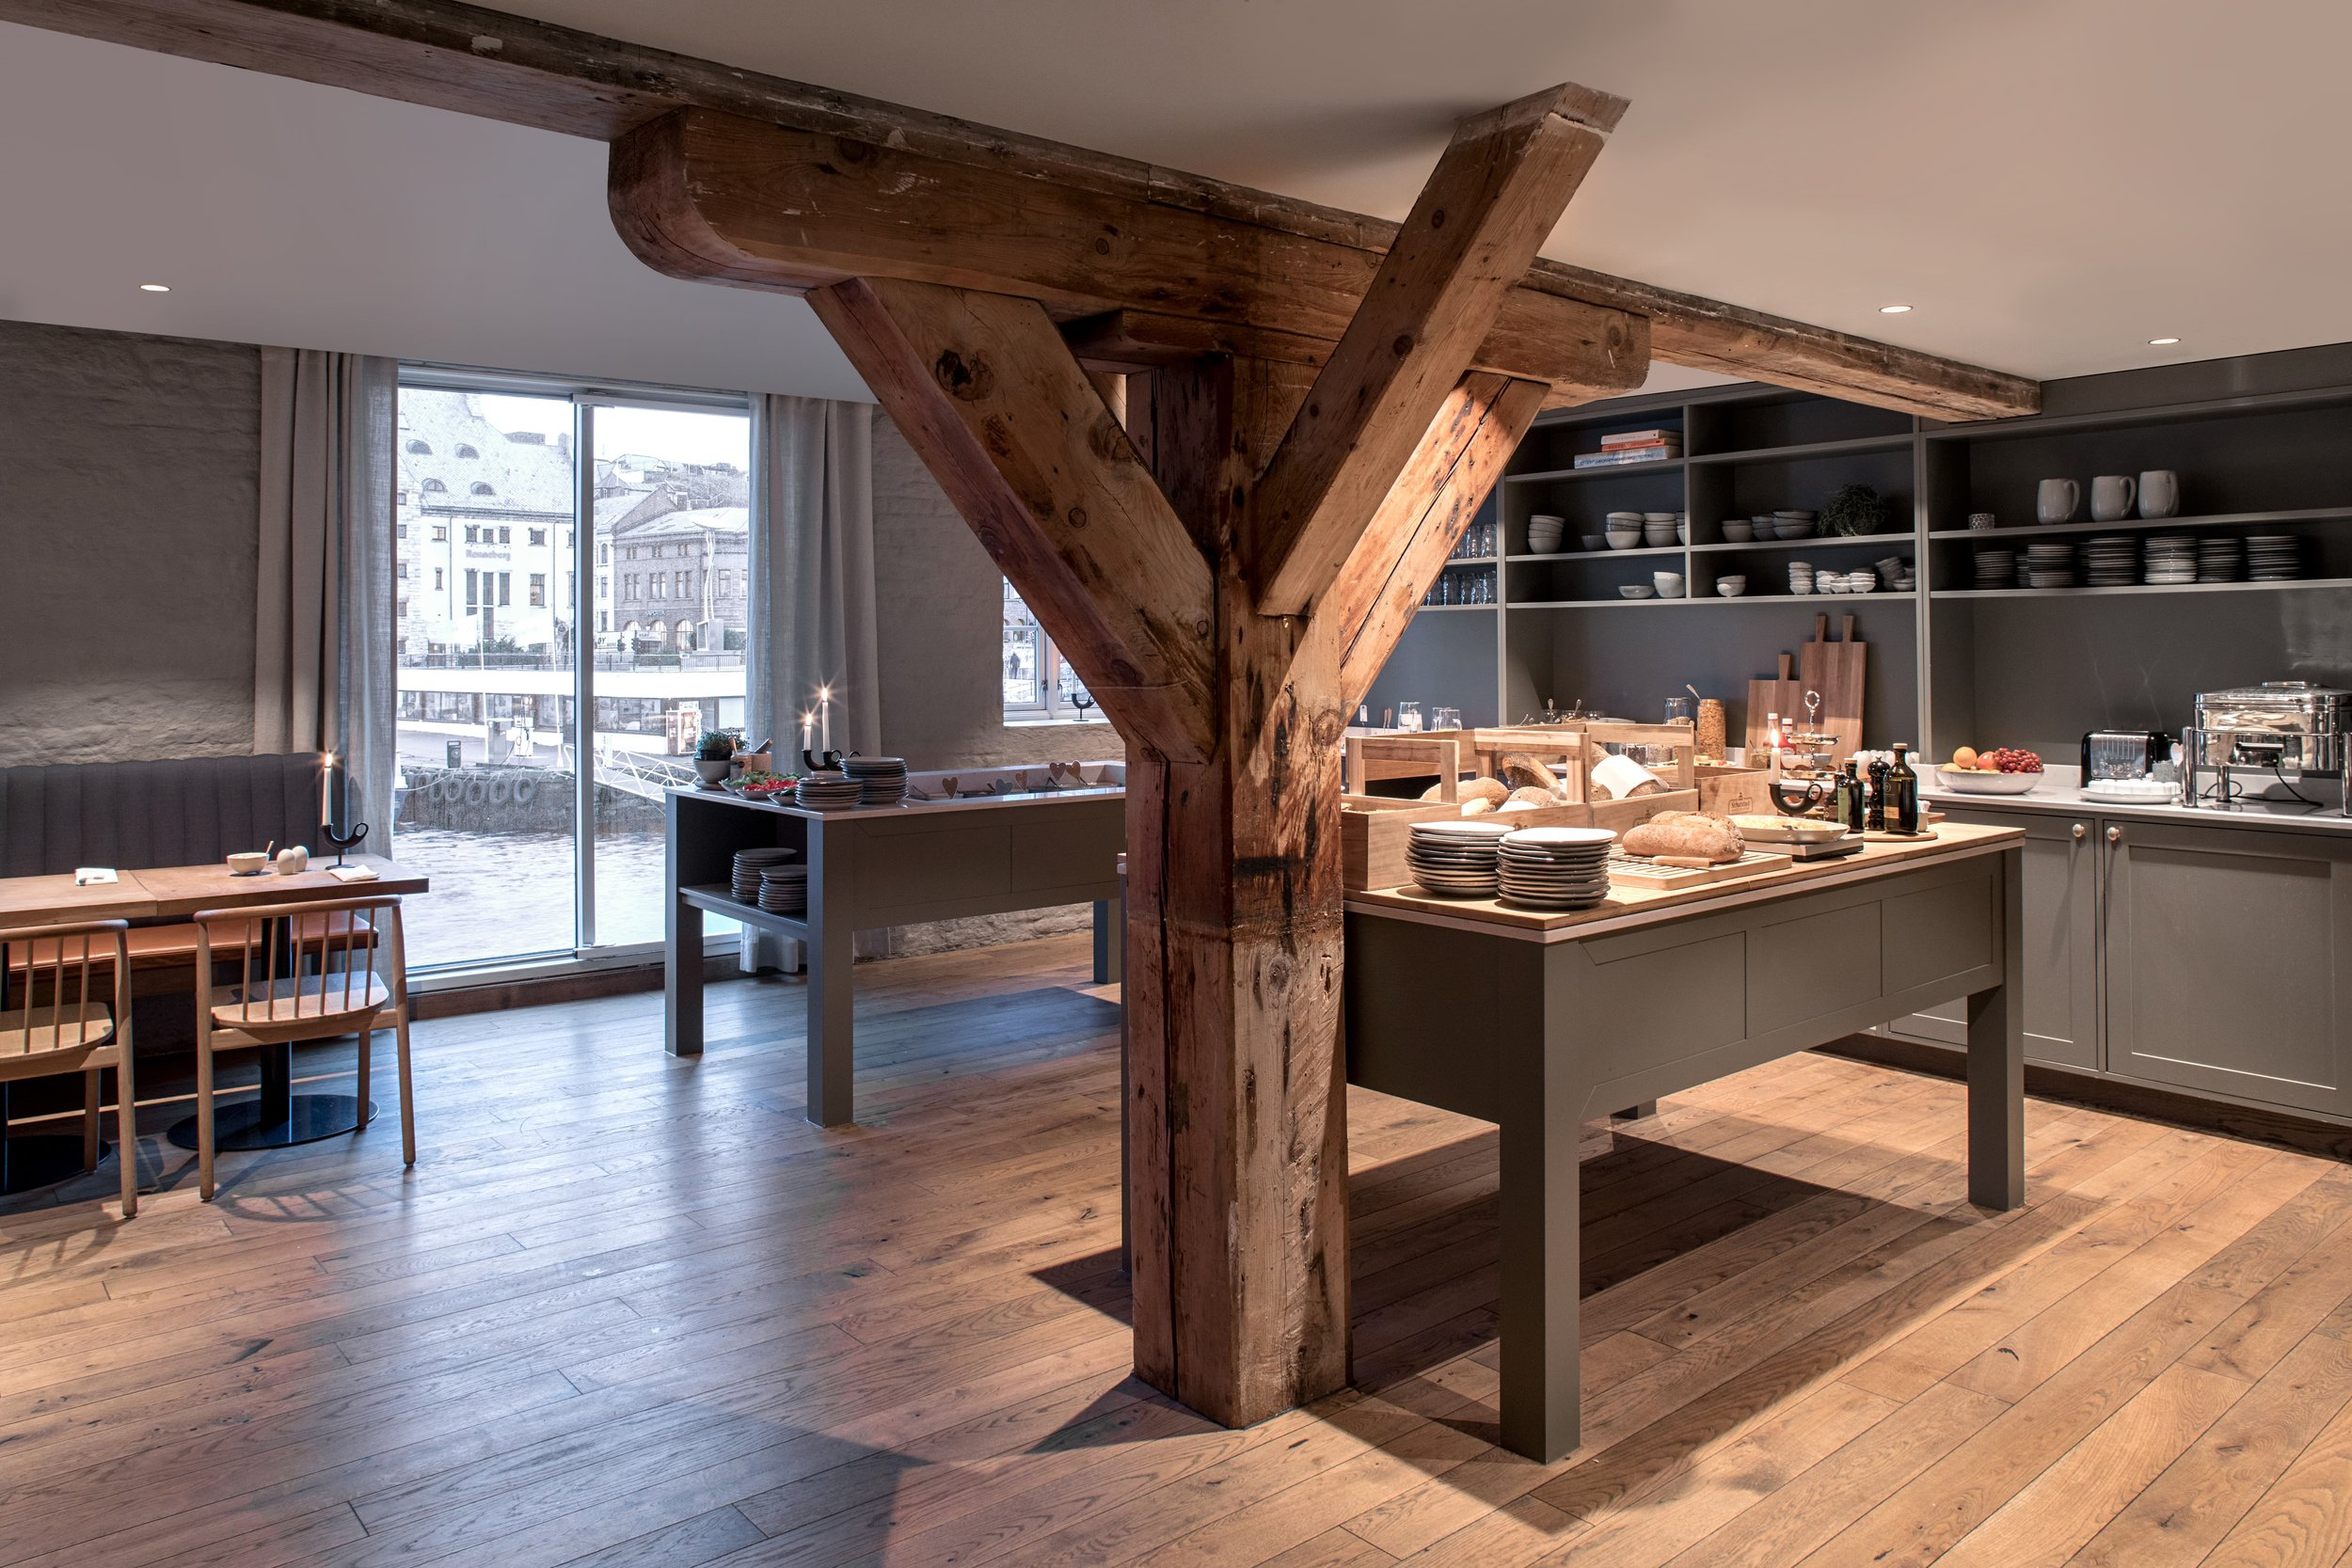 Hotel Brosundet Ålesund Norway, modern design dining area in raw wood and gray, by GARDE. Mads Emil Garde